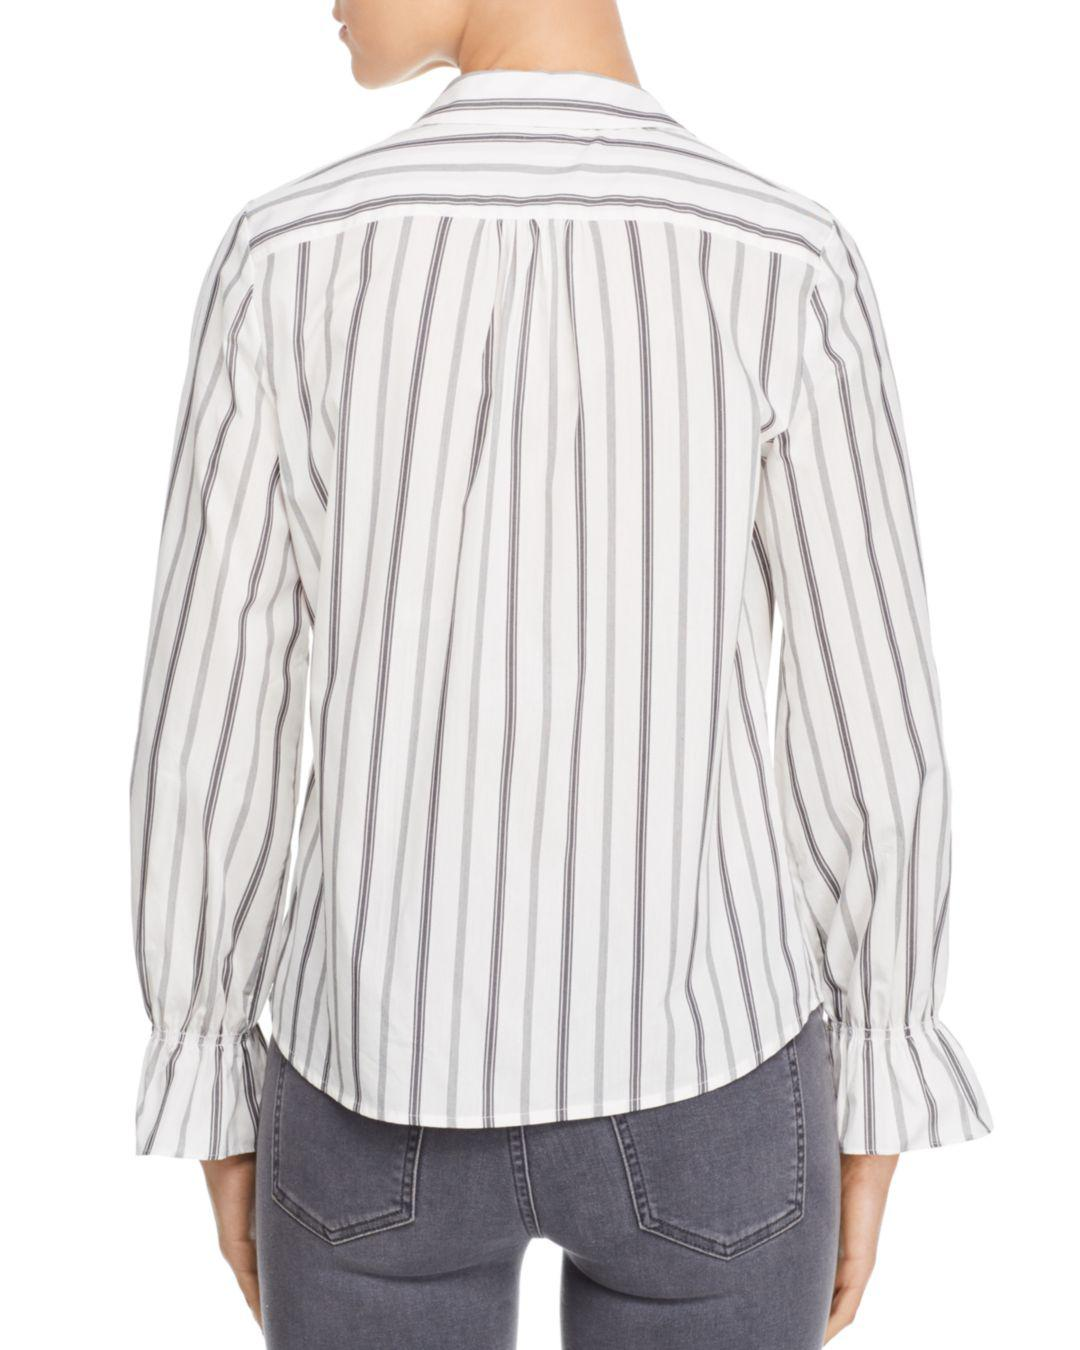 90f30d800ba10d Lyst - Karl Lagerfeld Striped Ruffle Top in White